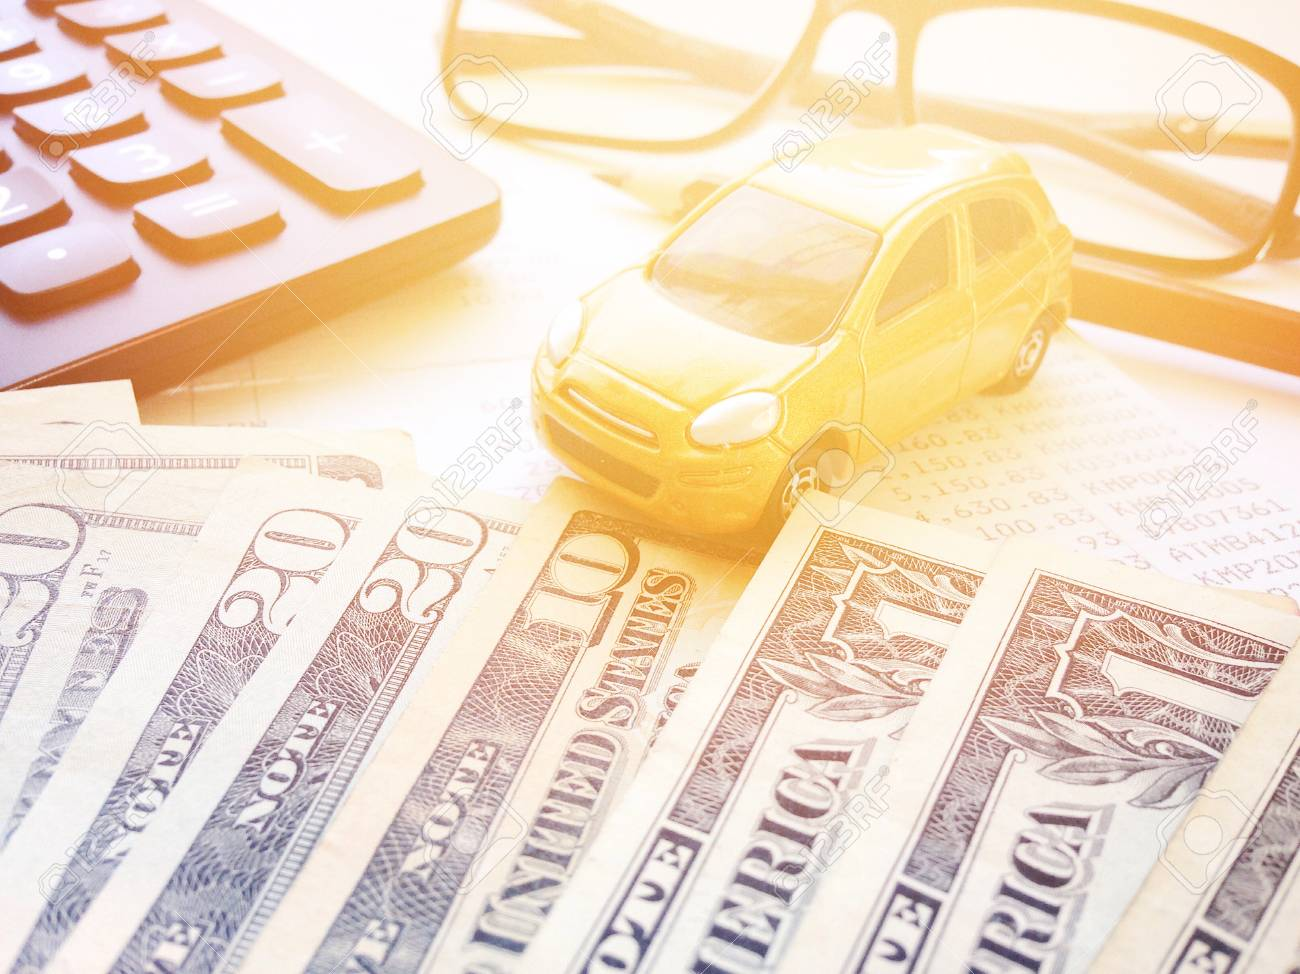 Business, finance, saving money or car loan concept : Miniature car model, American Dollars cash money, calculator and saving account book or financial statement on office desk table - 126599871